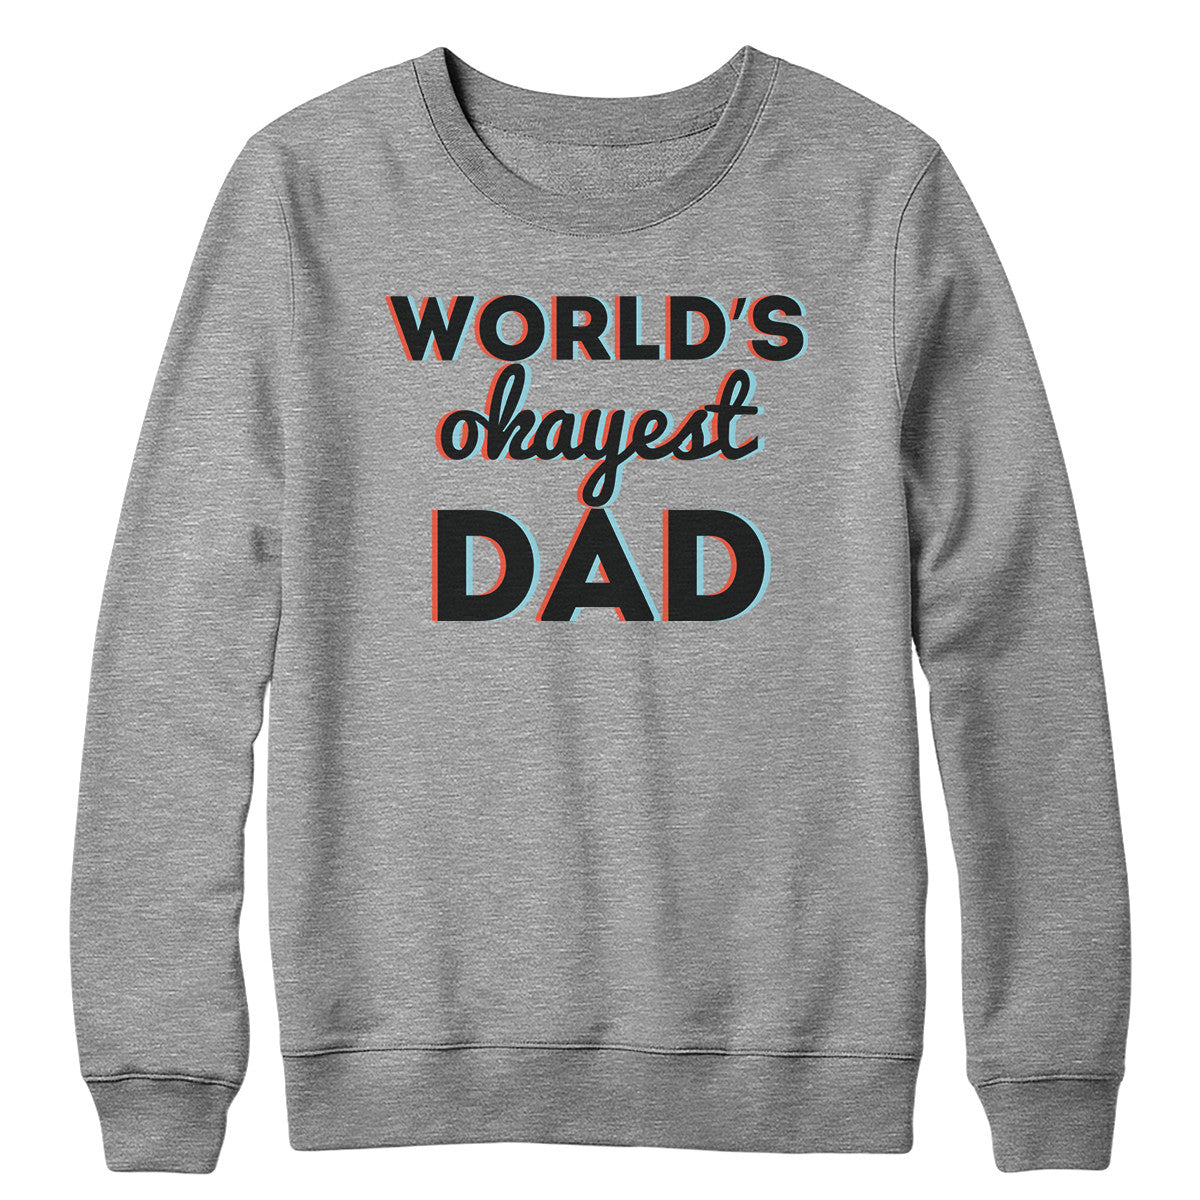 World's Okayest Dad Crewneck